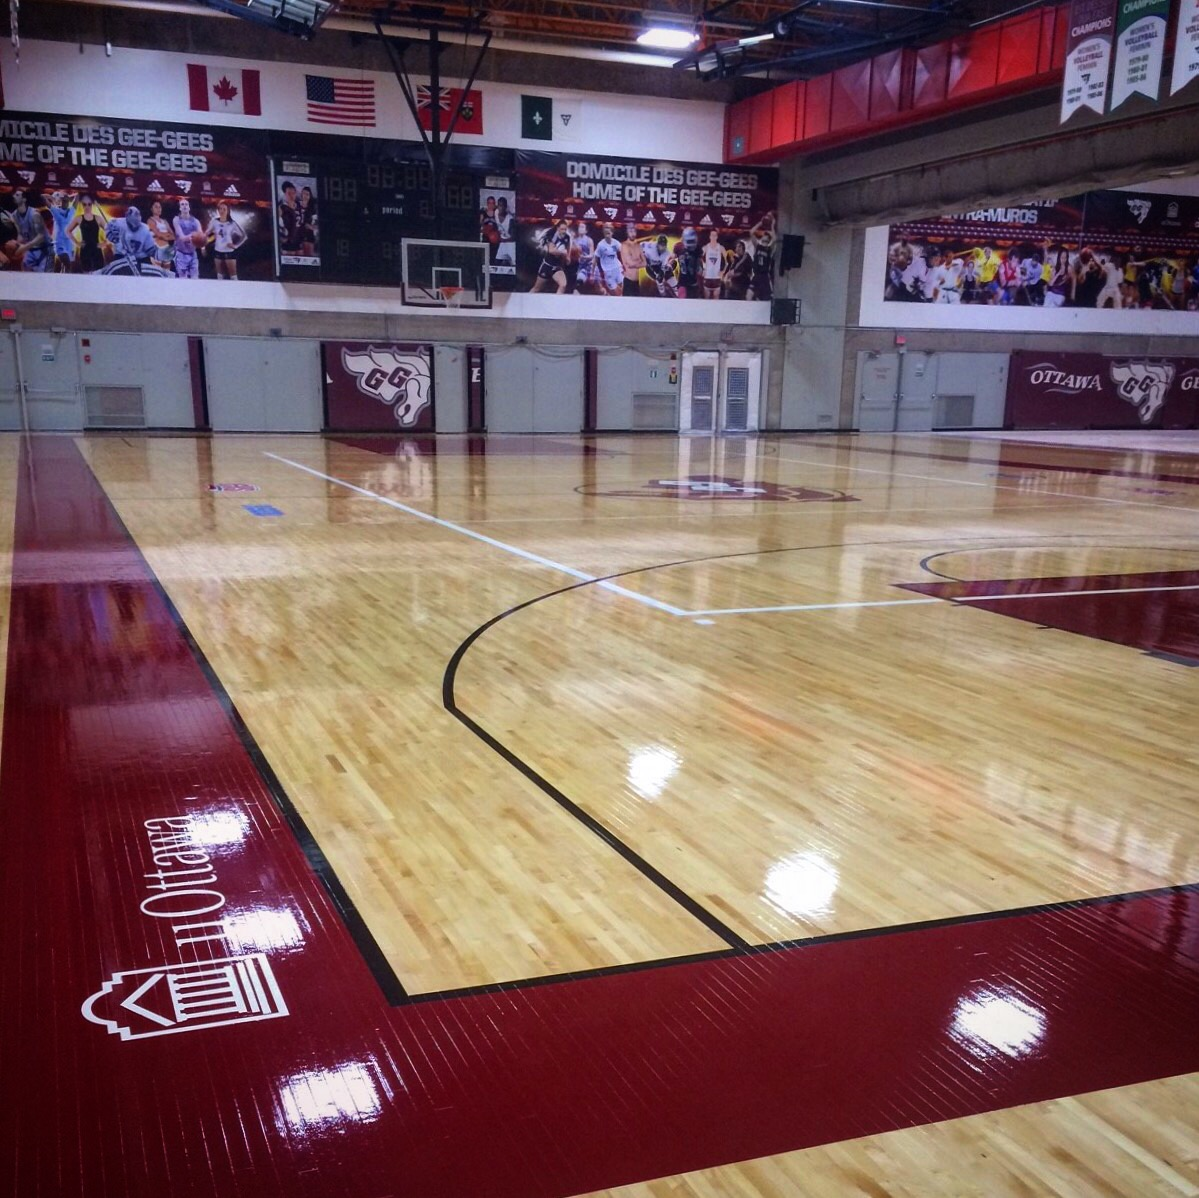 The freshly sanded and waxed floor of the Montpetit gym